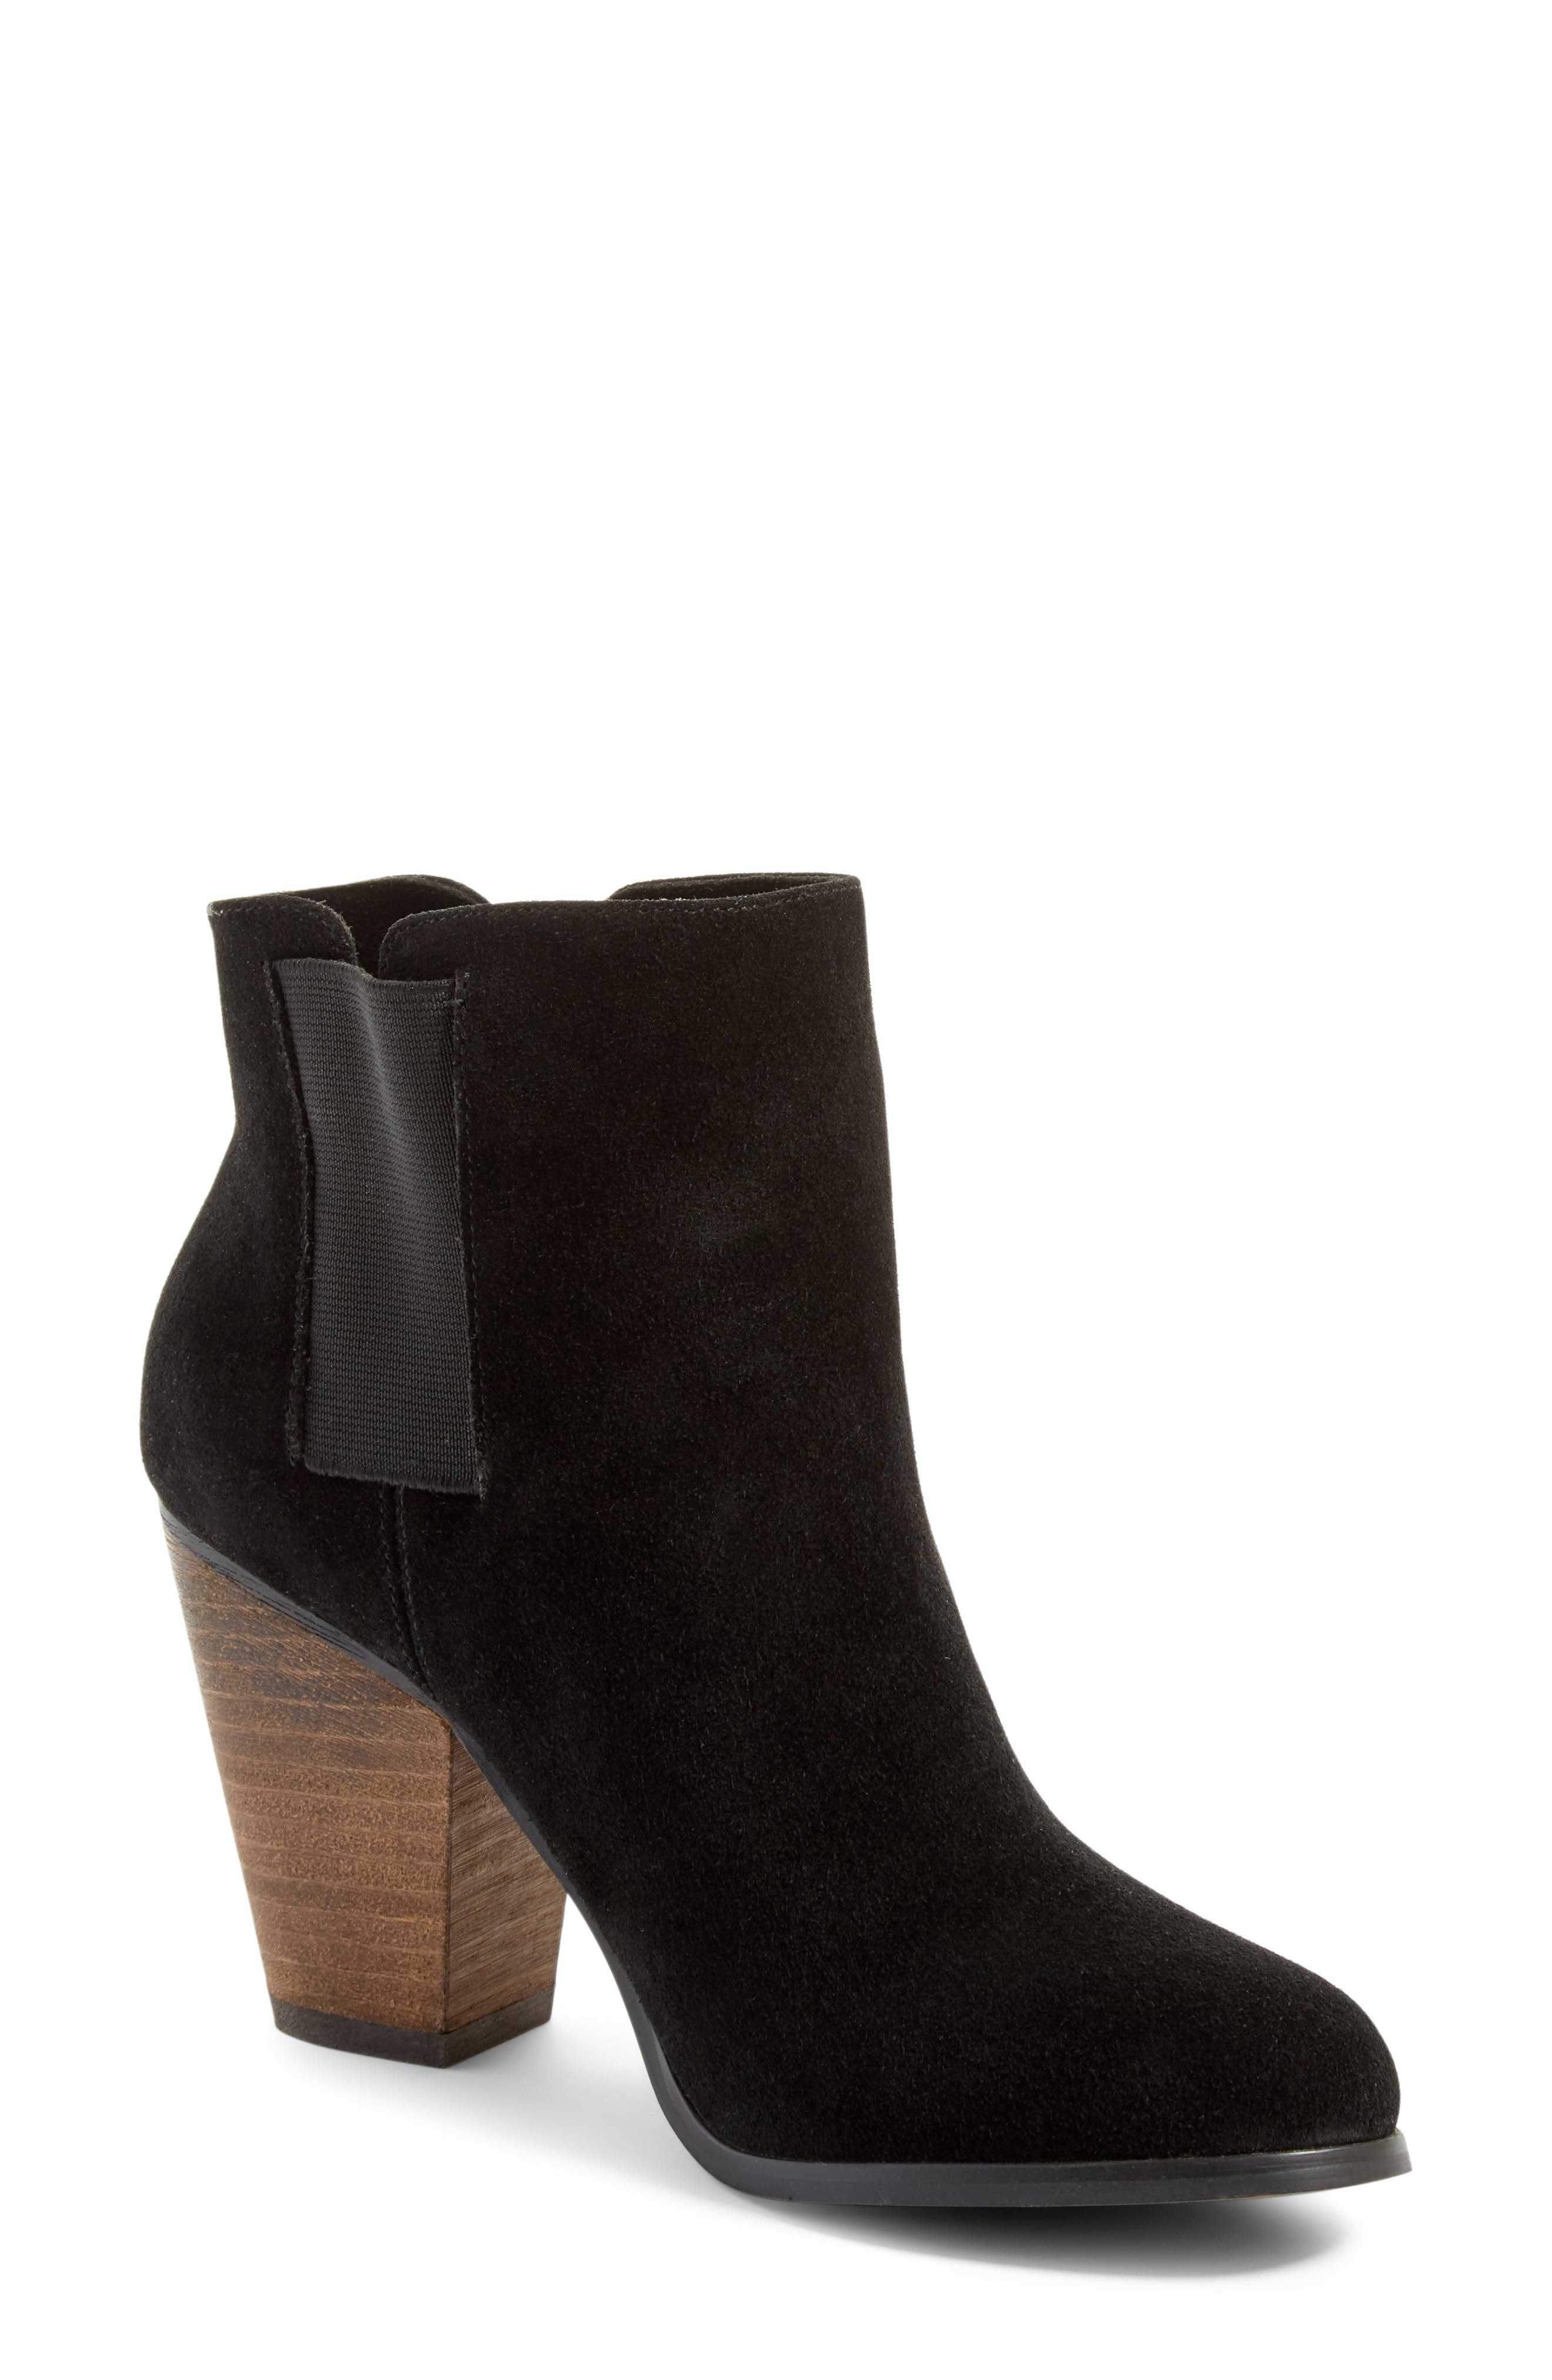 Alternate Image 1 Selected - Sole Society 'Lylee' Suede Bootie (Women)